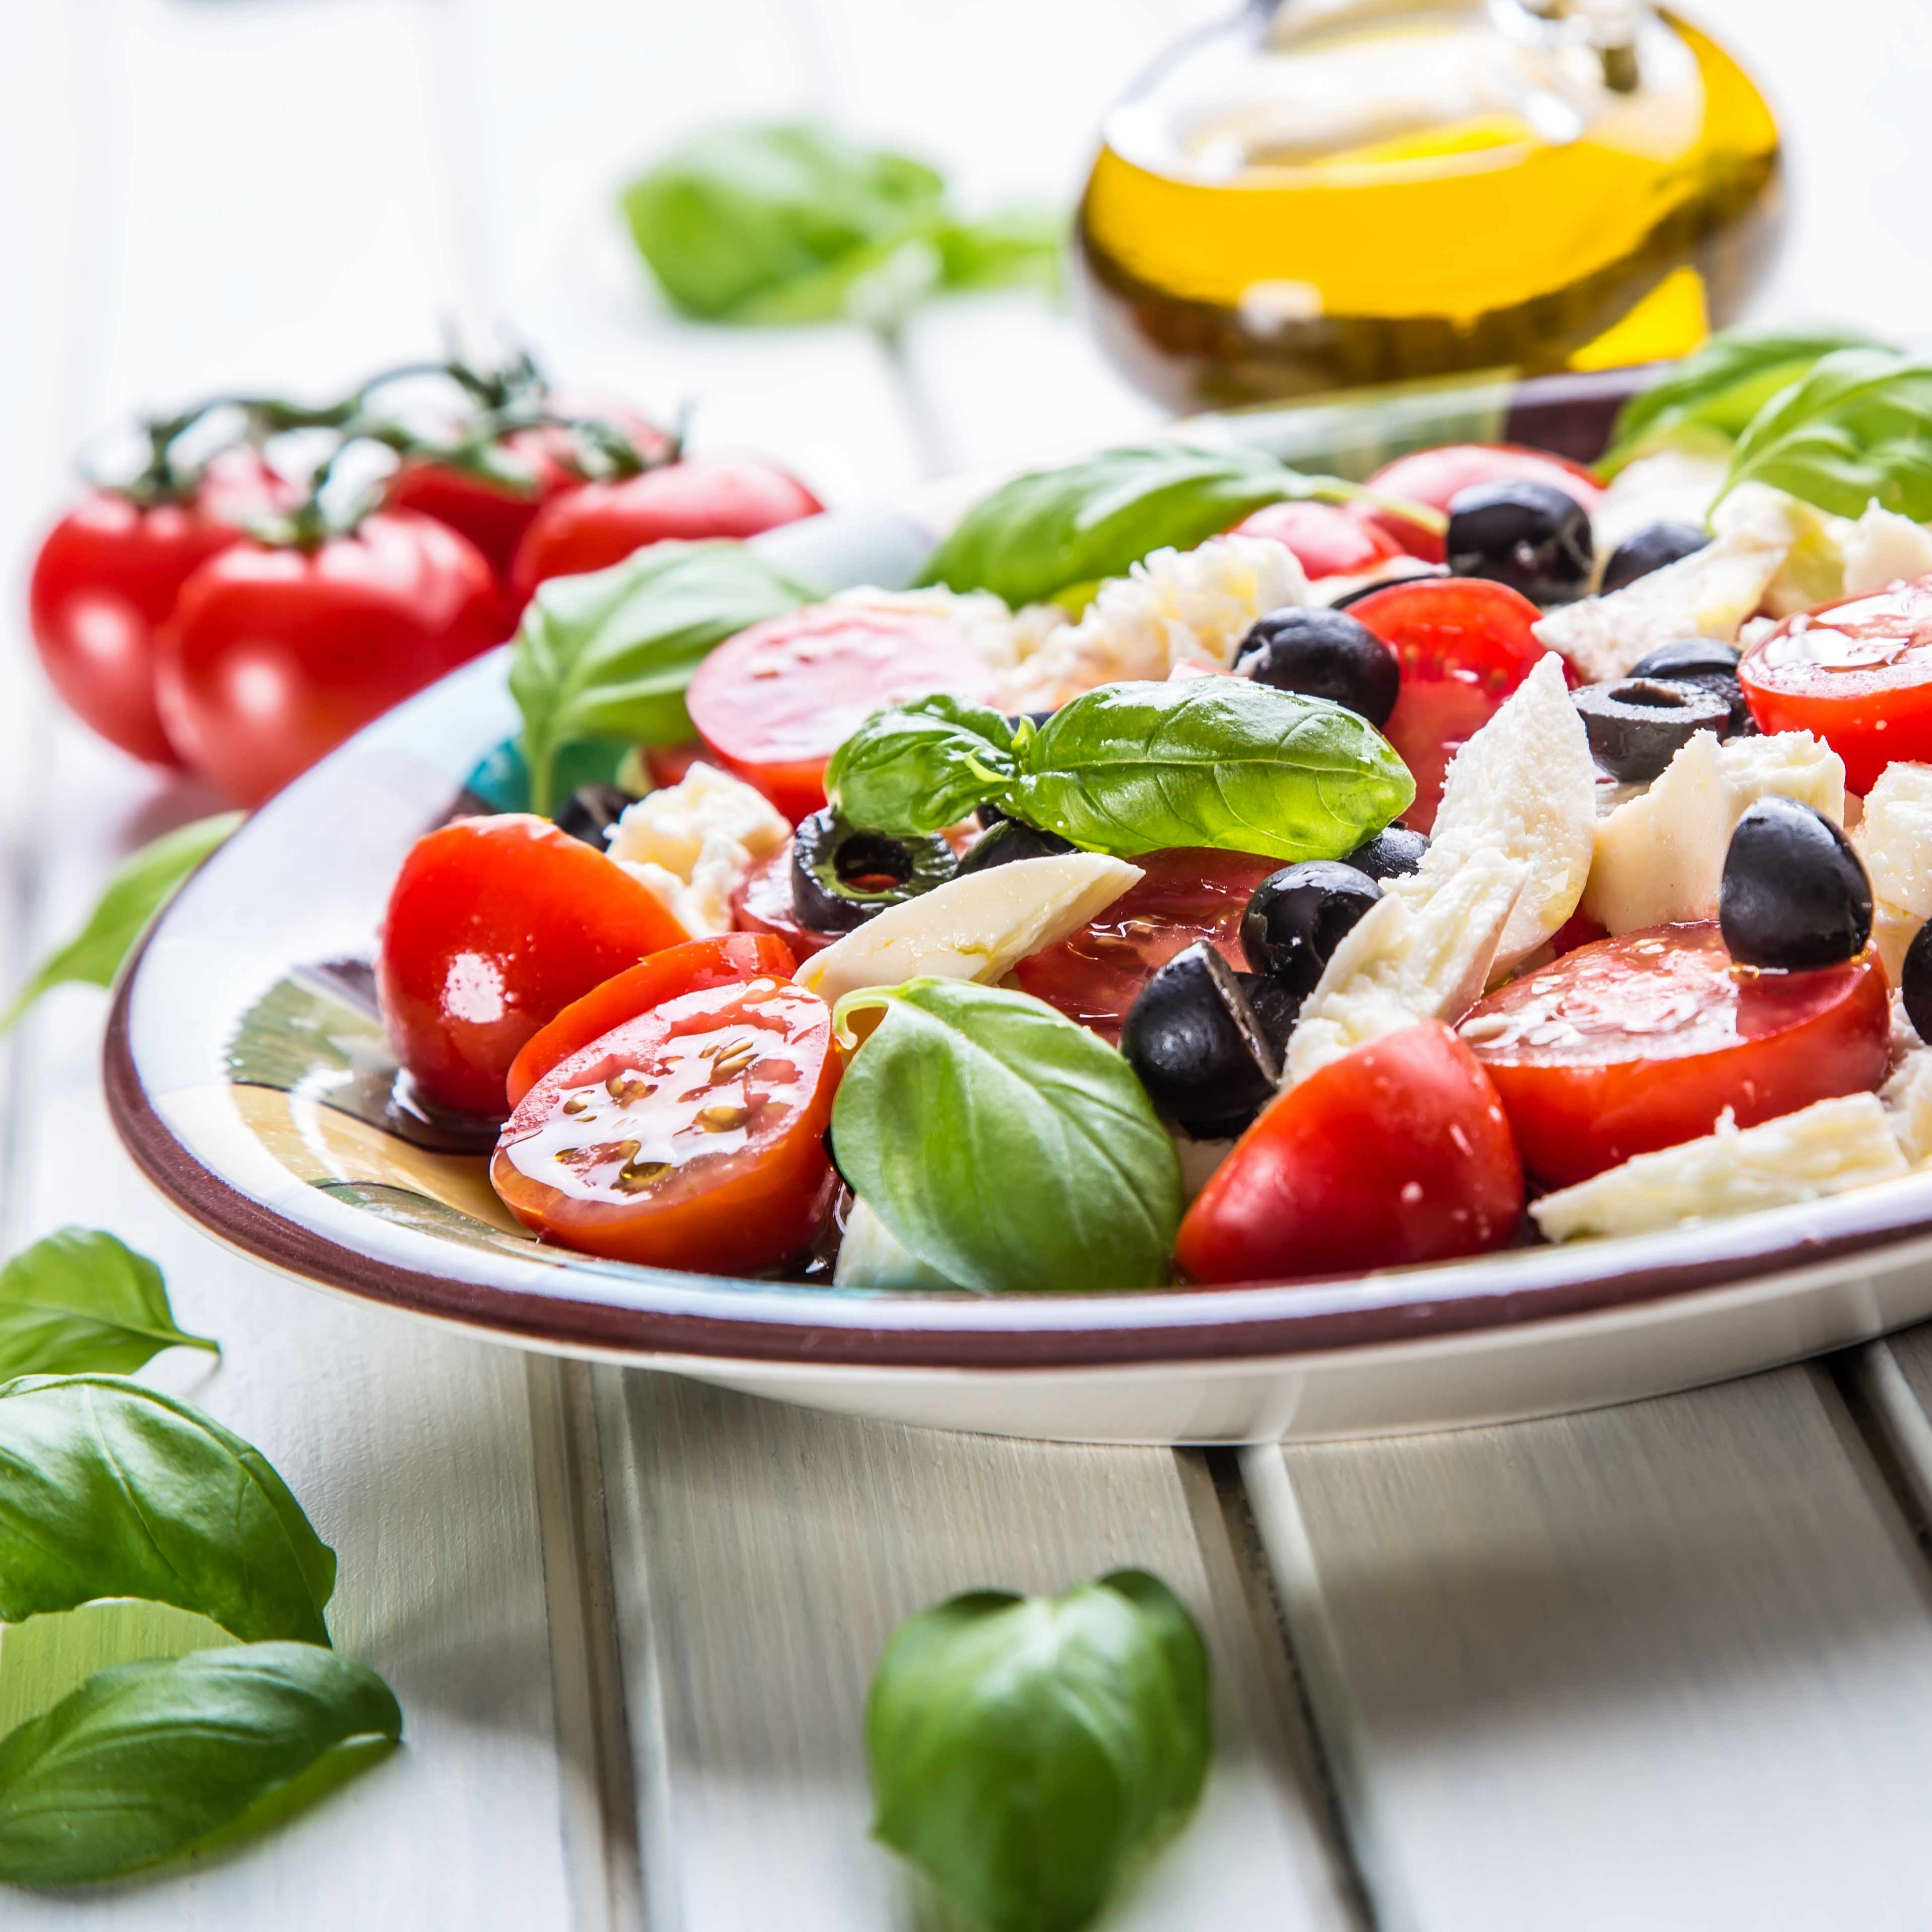 Mediterranean diet salad with tomatoes basil leaves, olives and fish